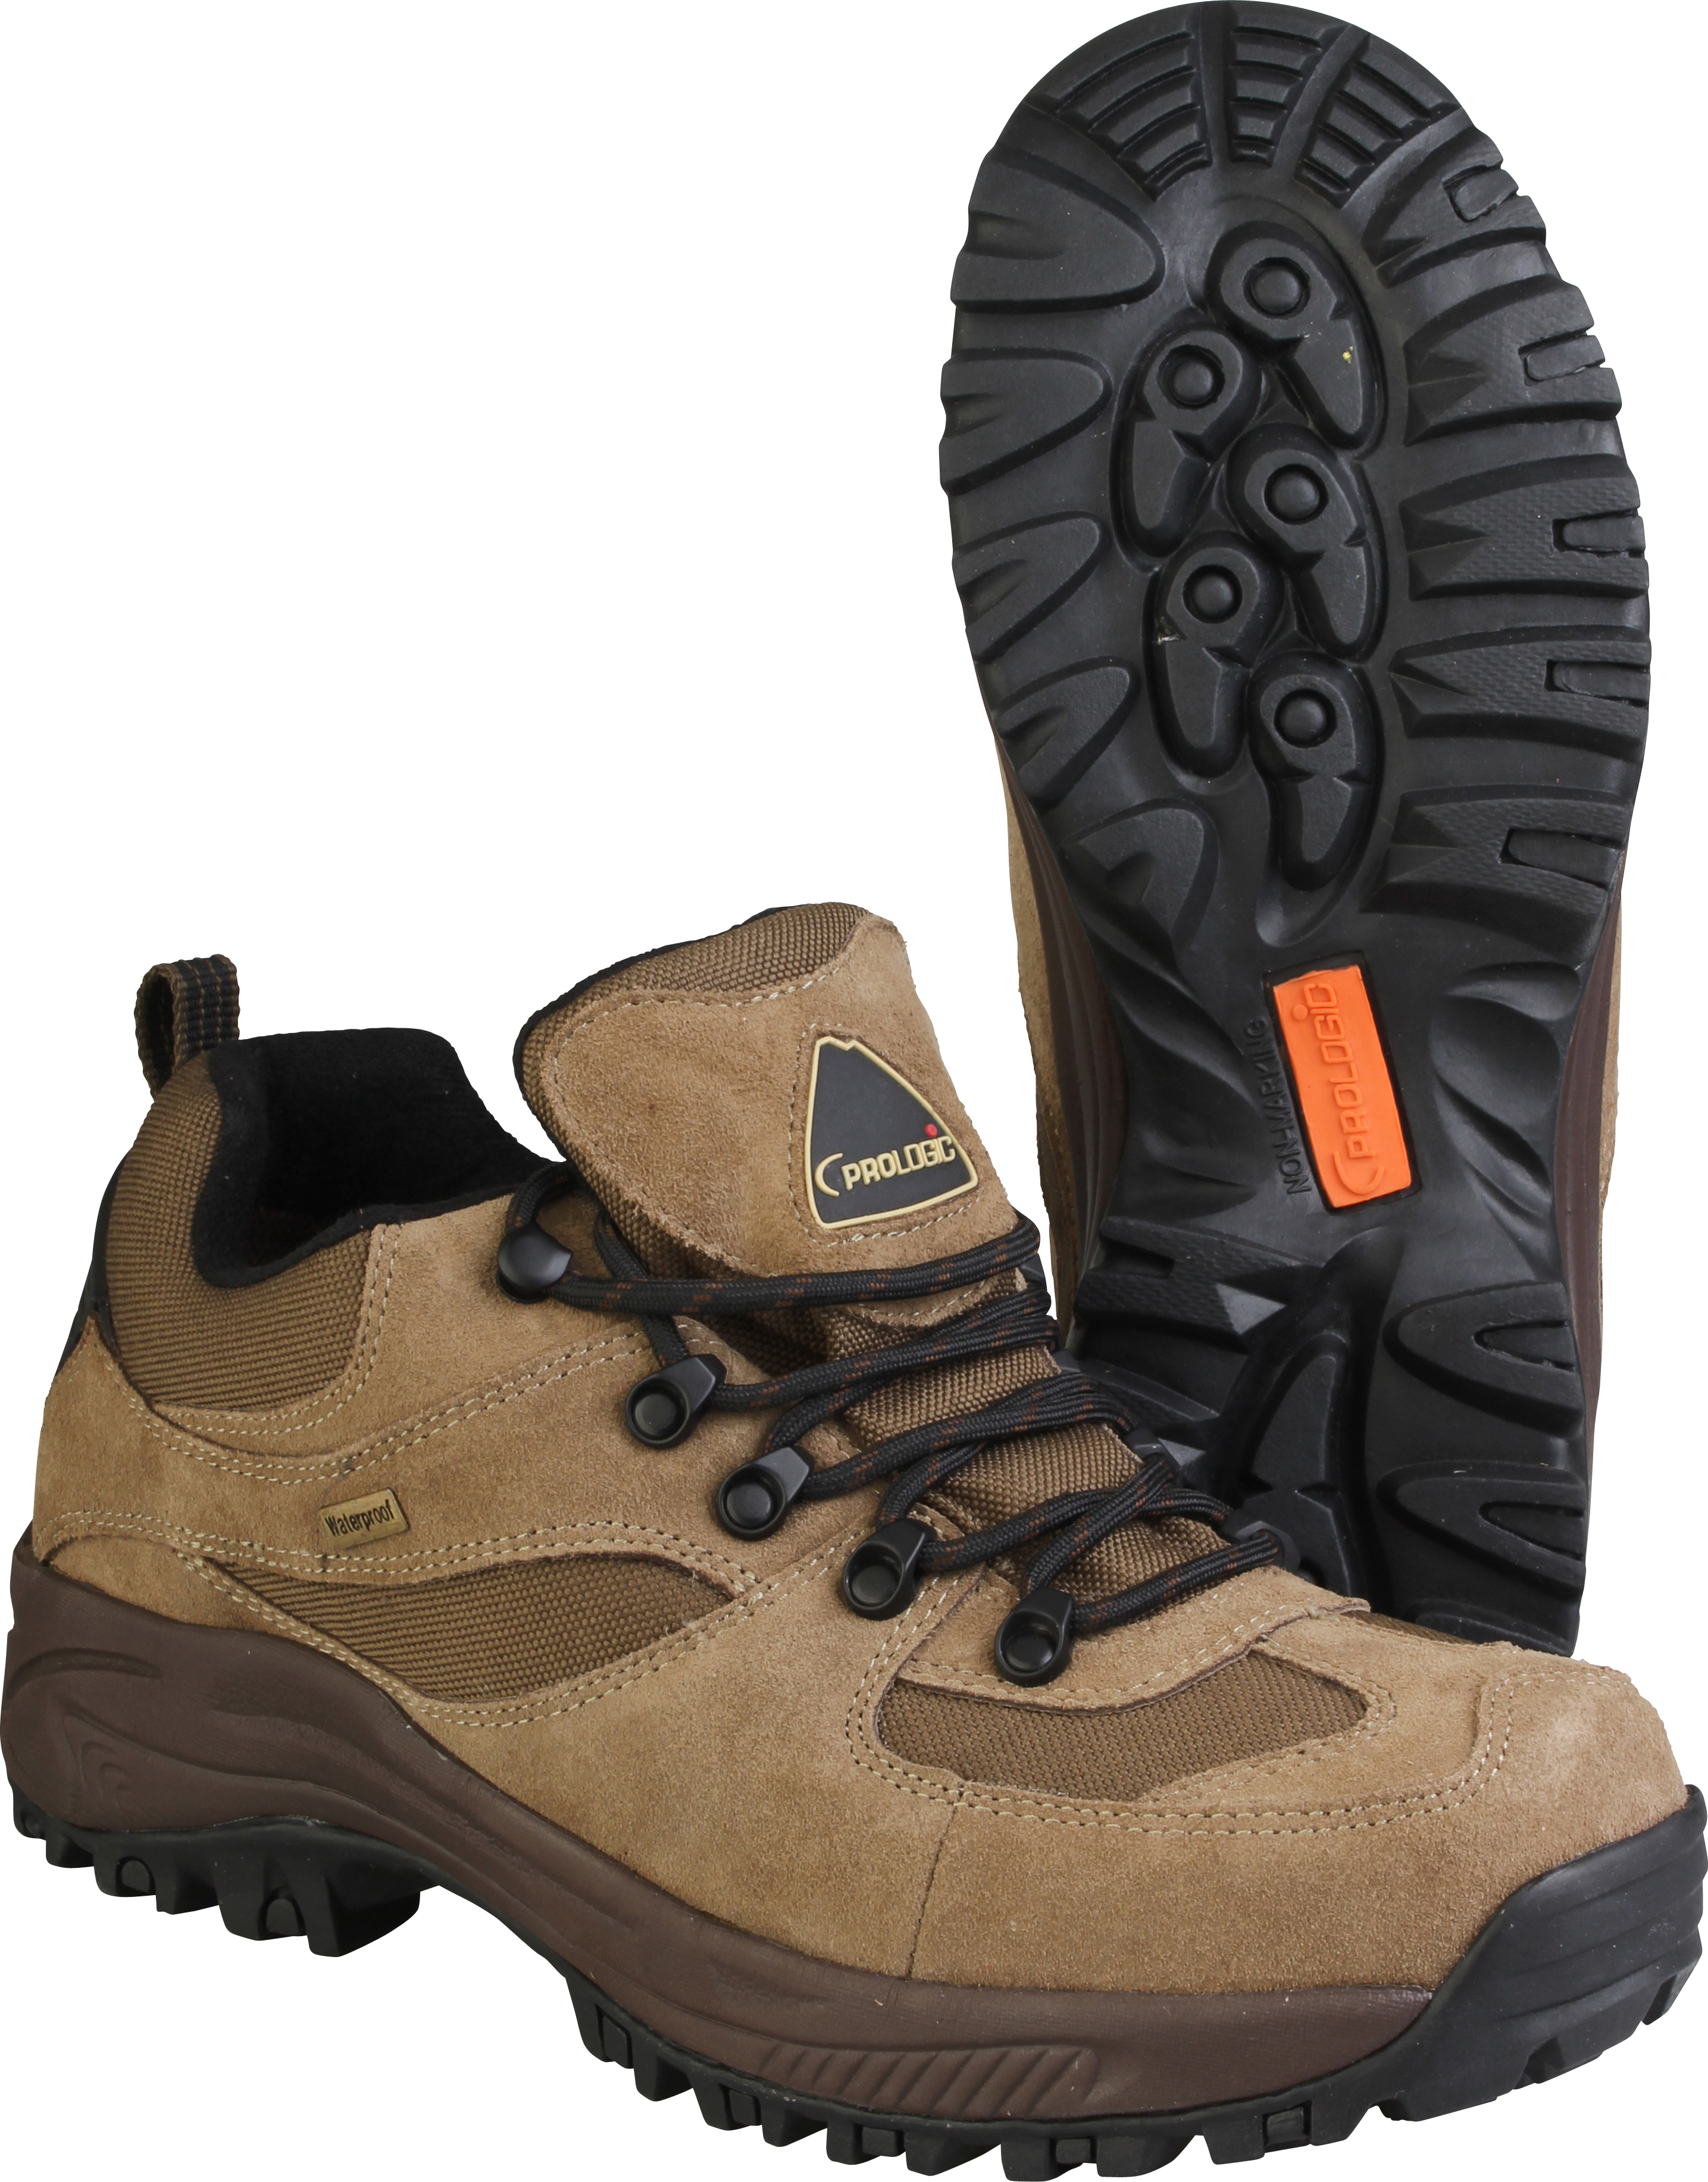 29b46ed2b18 Prologic Cross Grip-Trek Shoe Low Cut – Glasgow Angling Centre